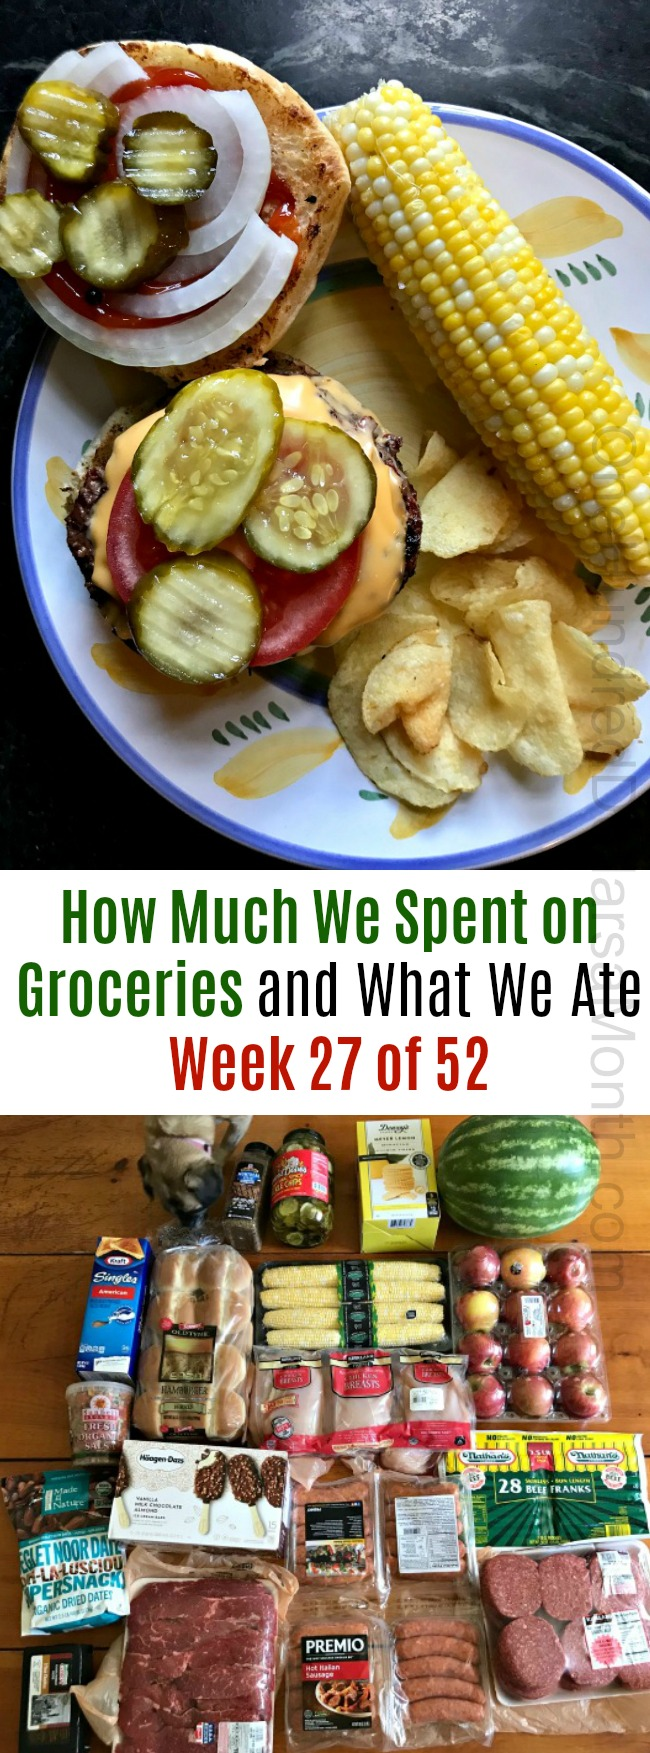 How Much We Spent on Groceries and What We Ate – Week 27 of 52